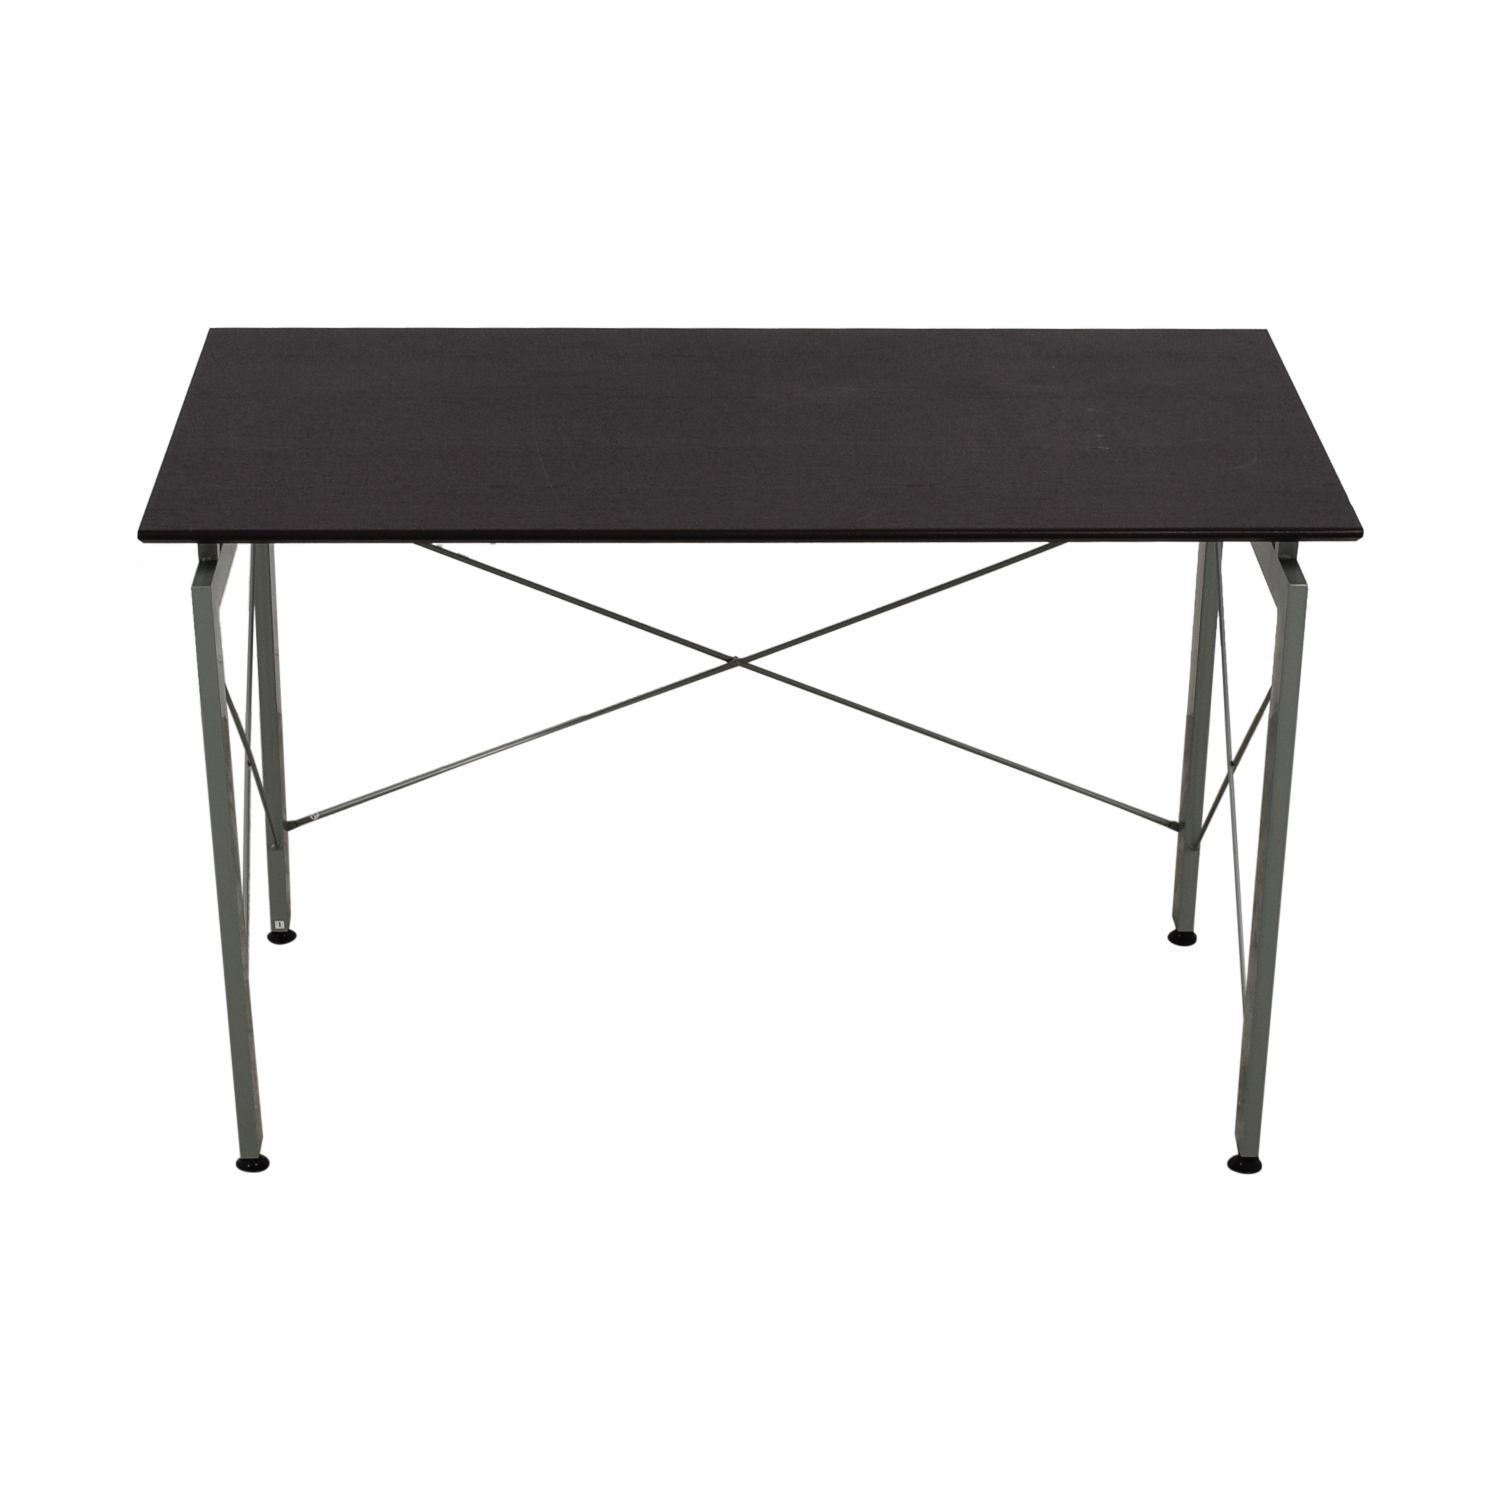 Metal and Wood Desk second hand